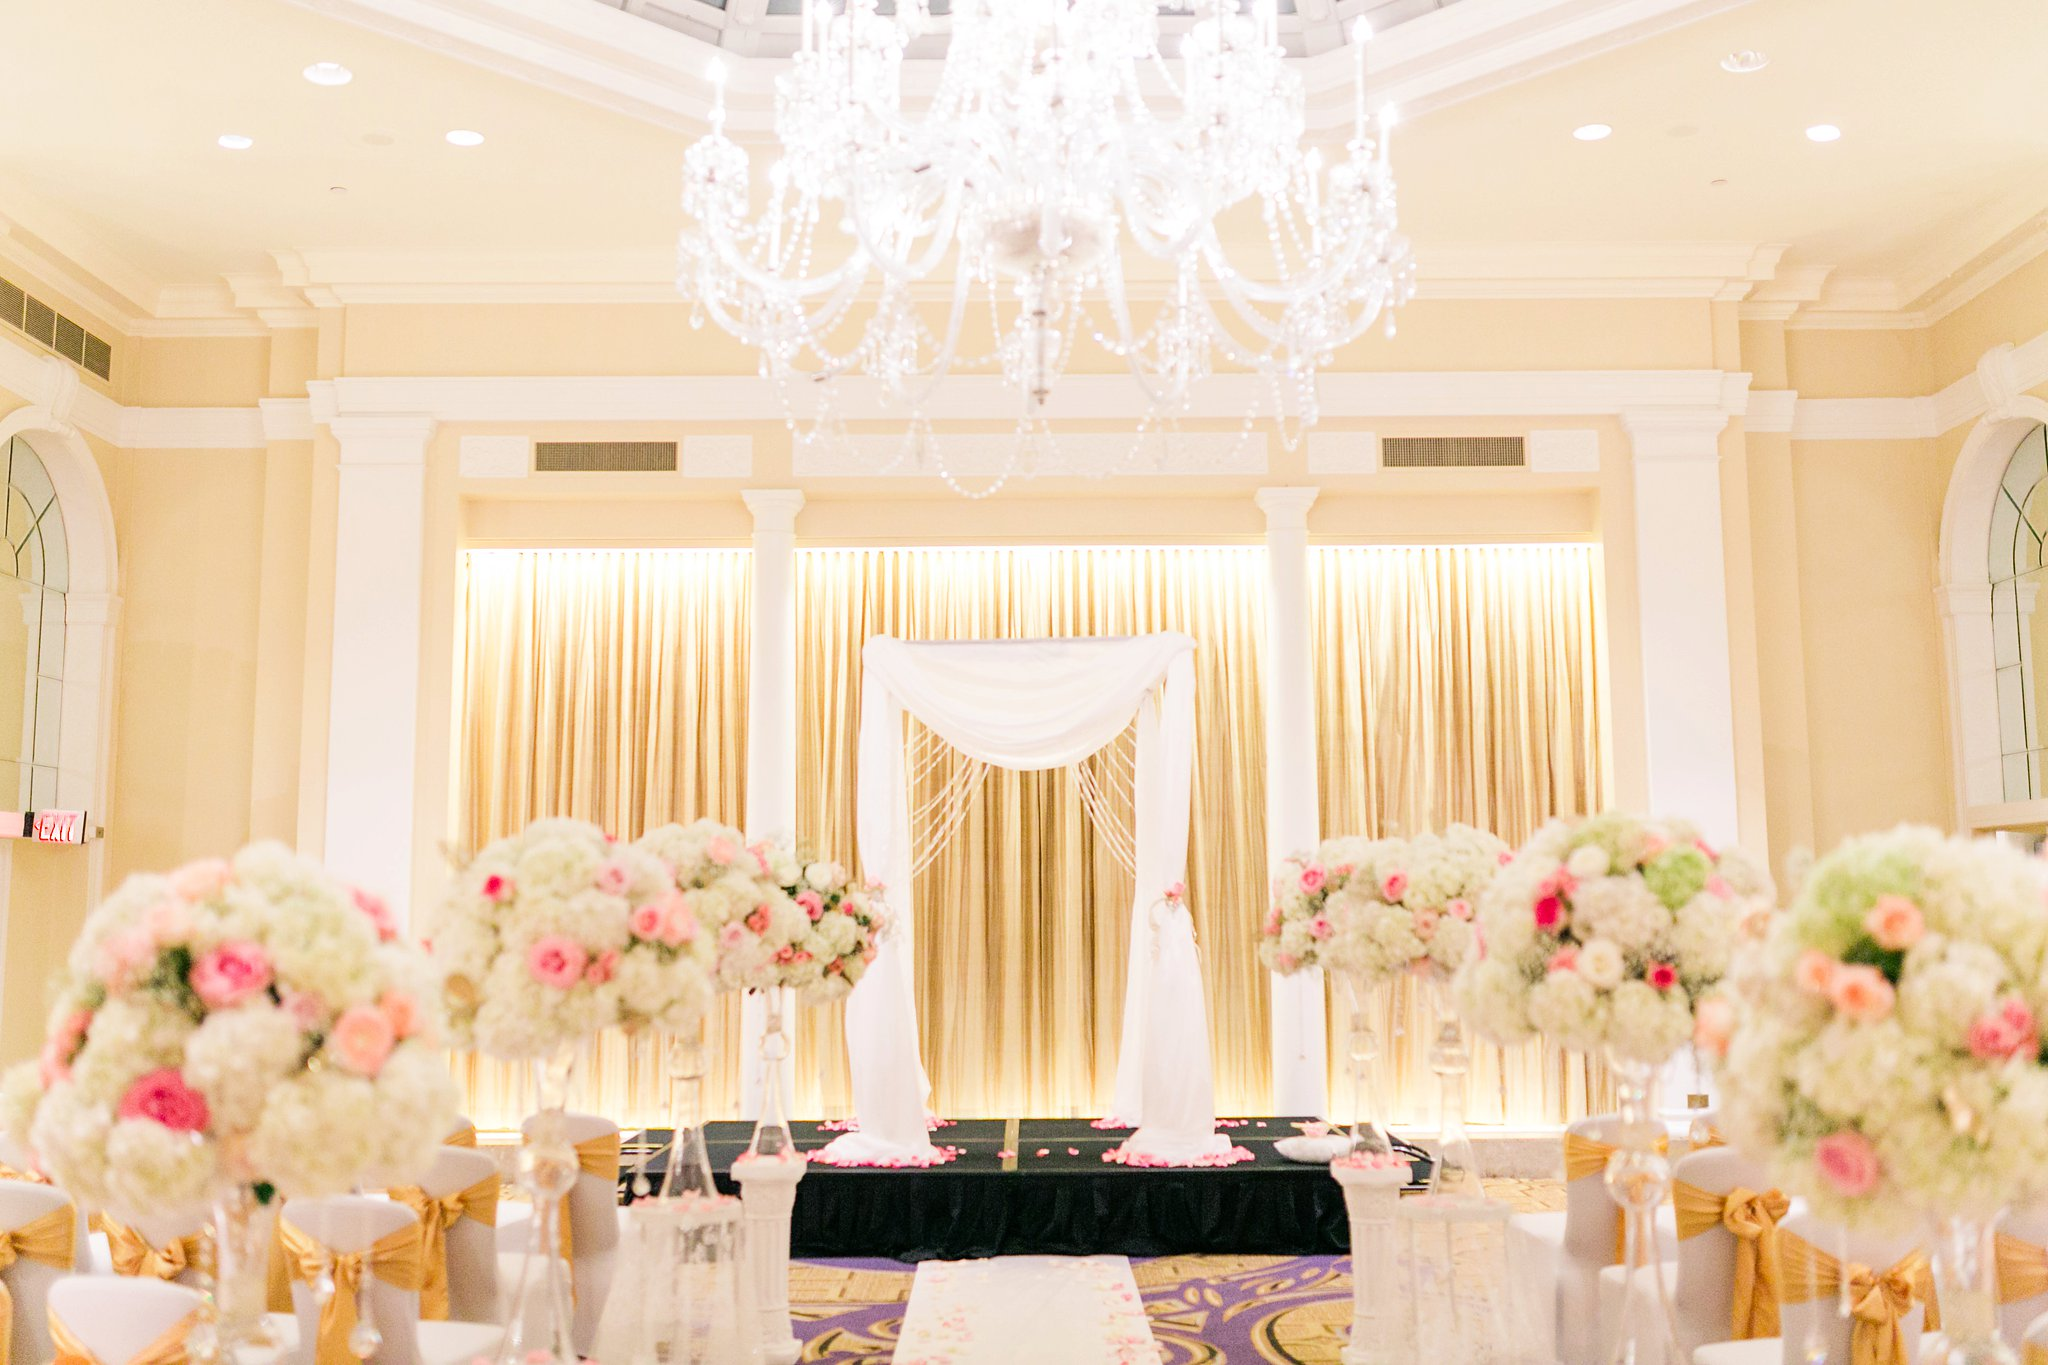 Mayflower Hotel Wedding Photos DC Pink & Gold Winter Wedding Tori & Tyler-189_photo.jpg